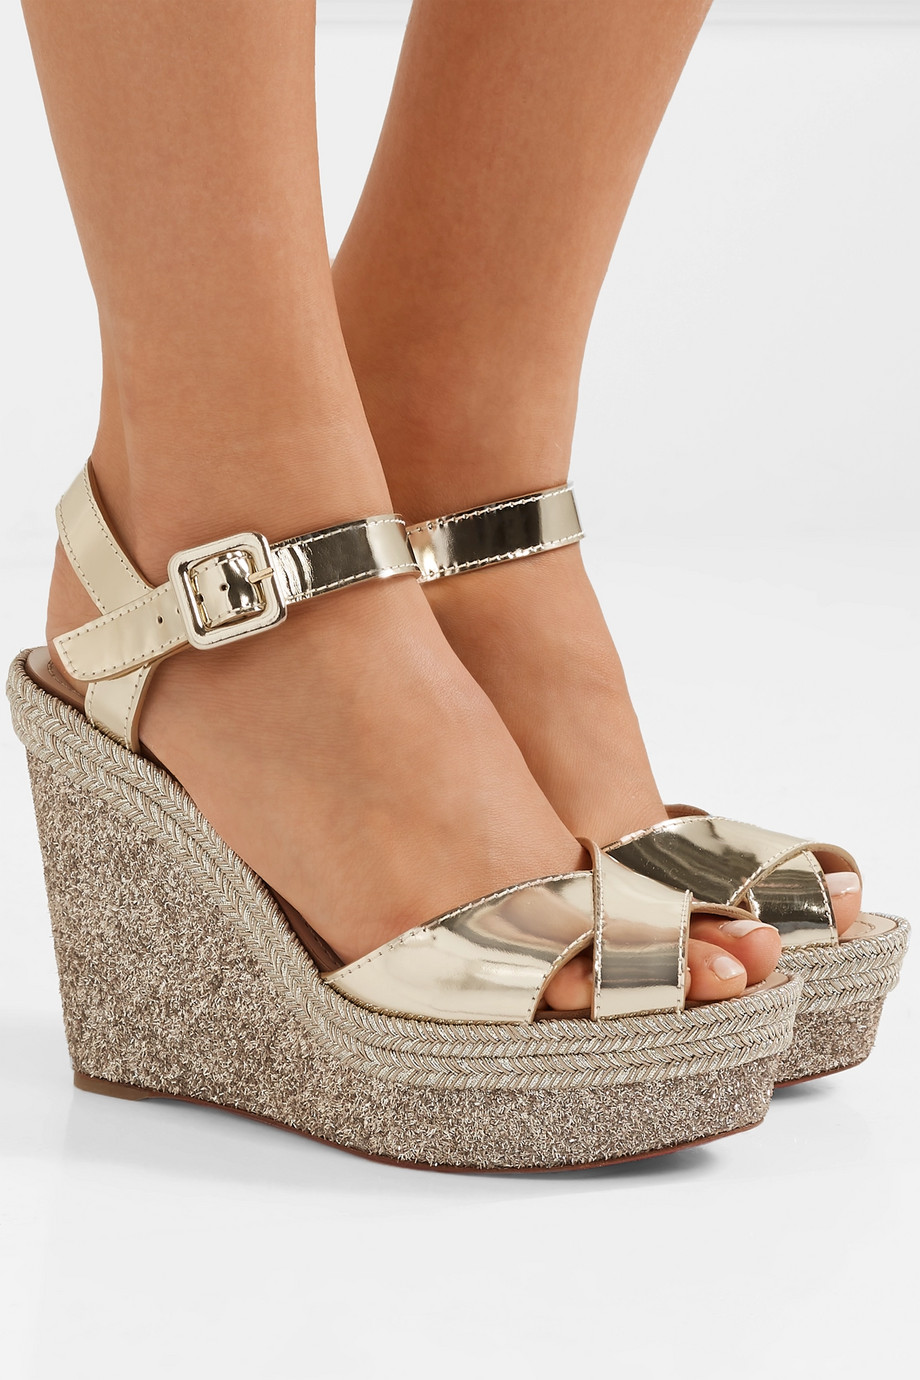 Christian Louboutin Almeria 120 leather espadrille wedge sandals